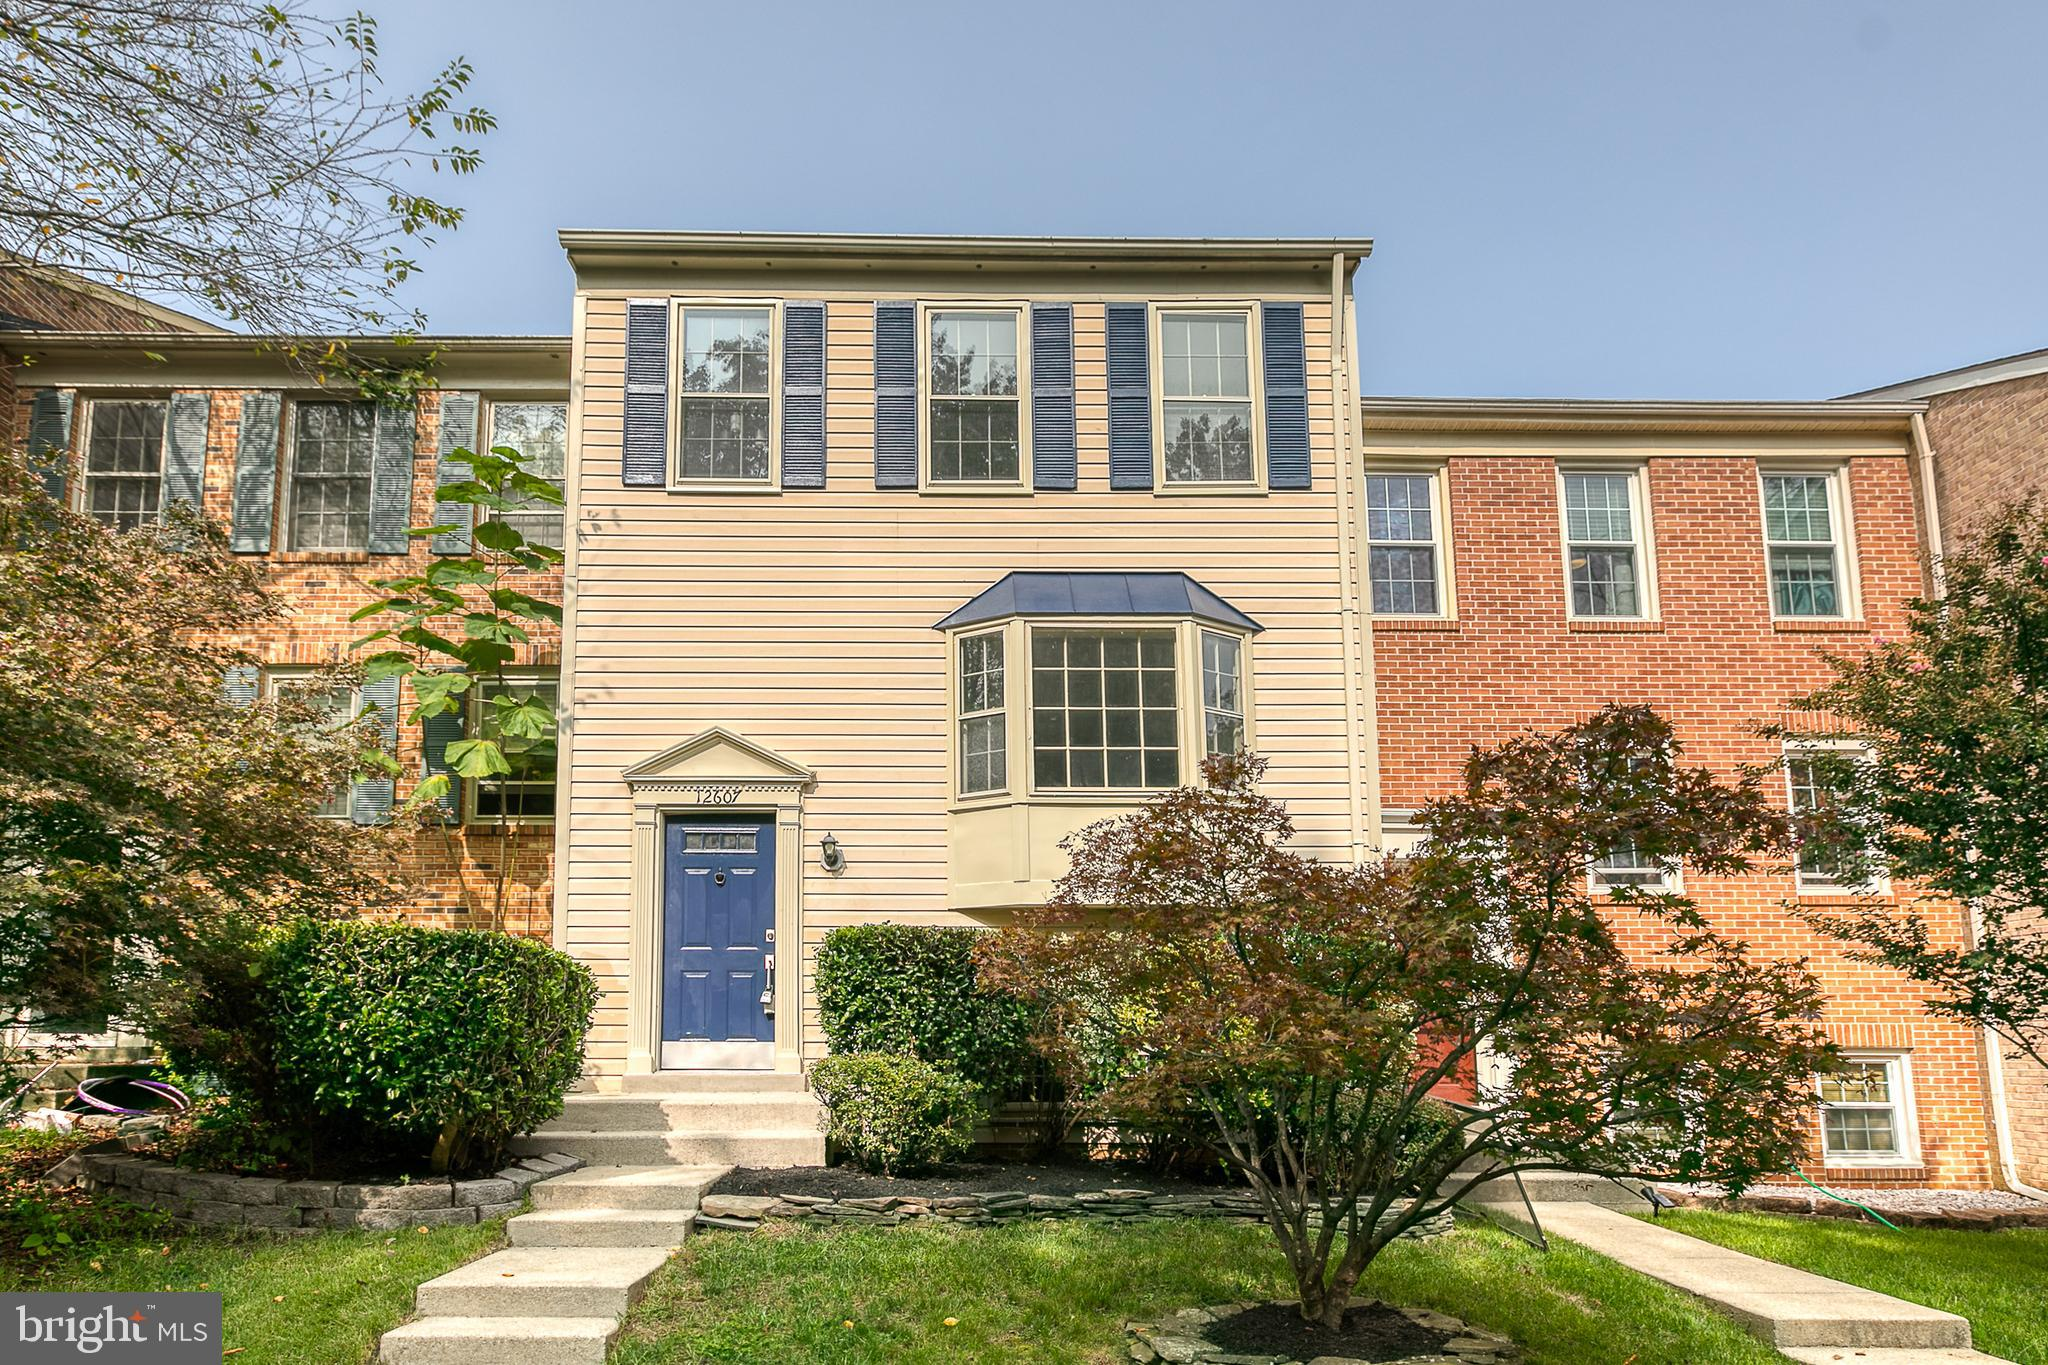 Just Listed! 3 bedroom, 2 Full bath, 2 half bath townhome on a beautiful secluded street in the West